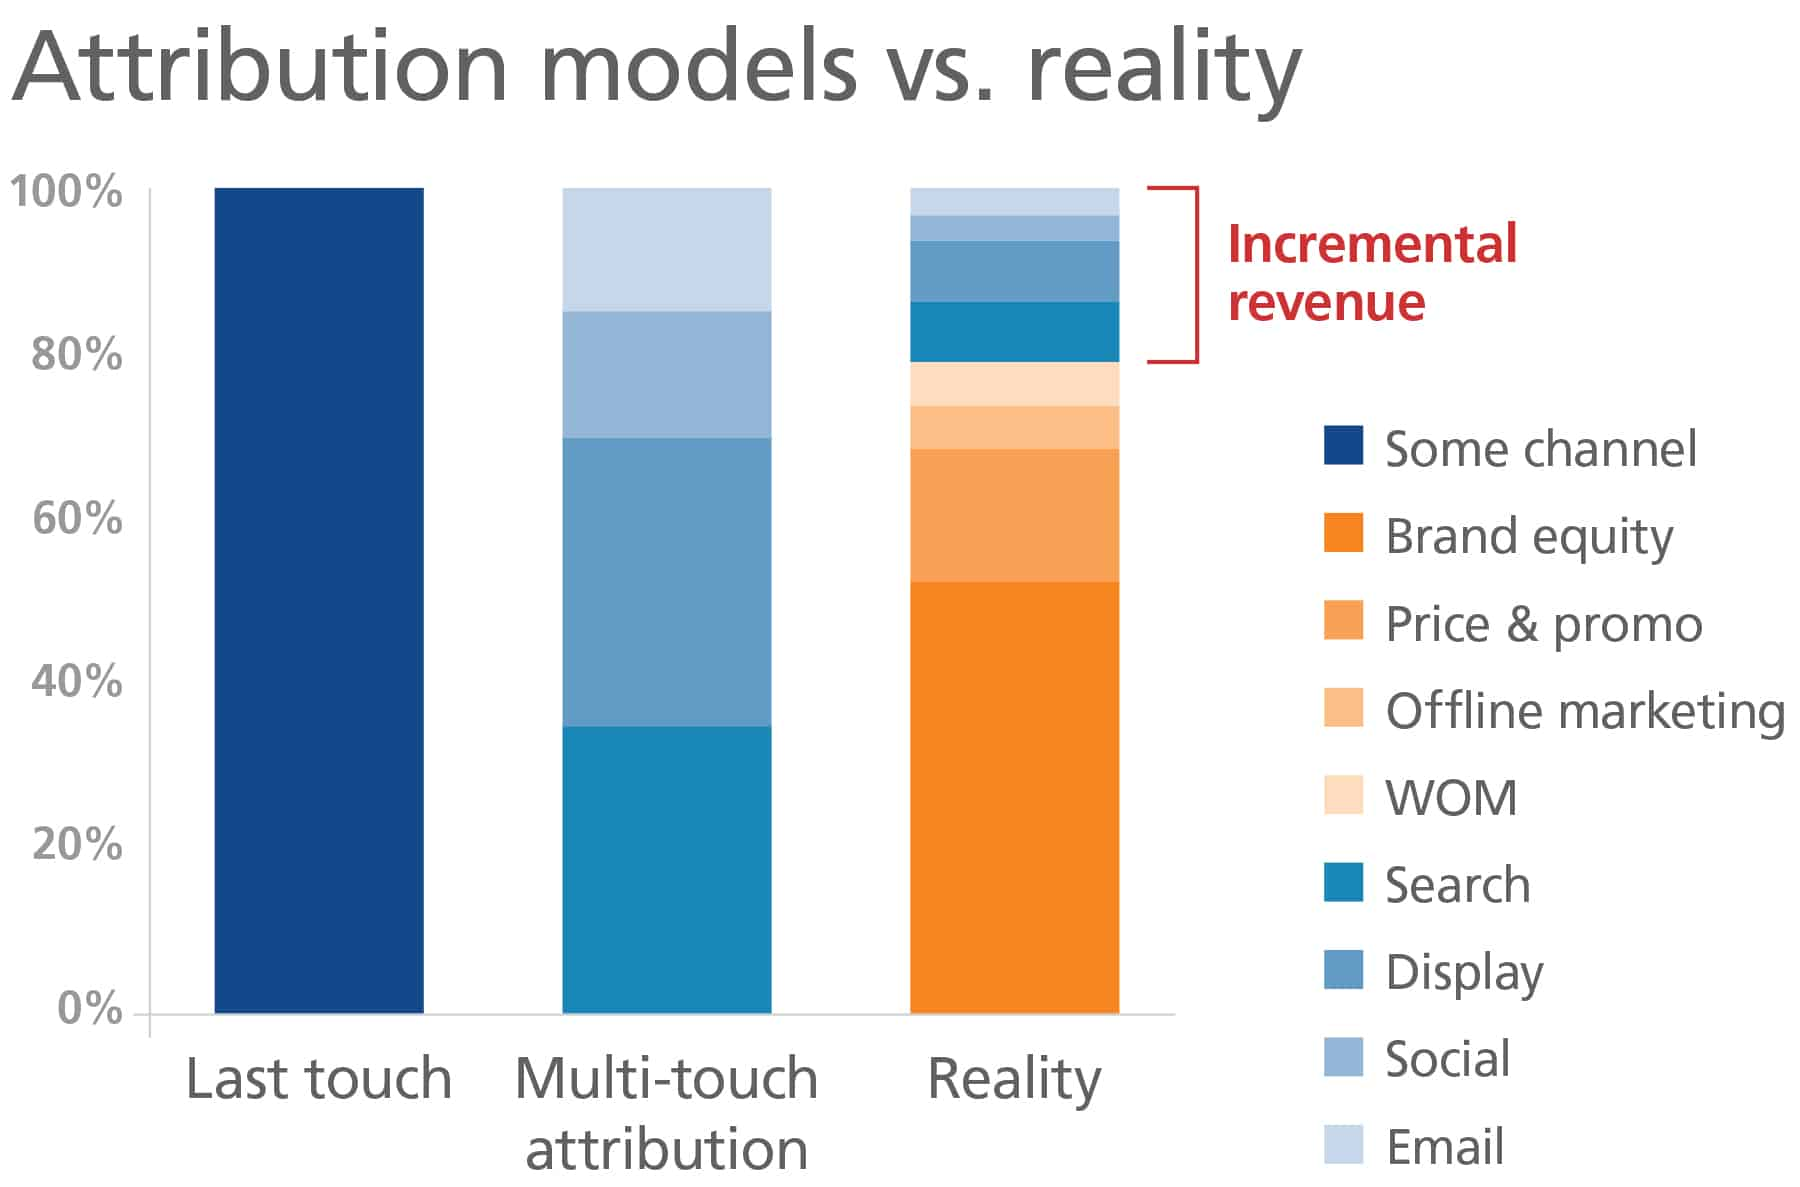 Bar chart showing difference between last-touch, multi-touch attribution and reality